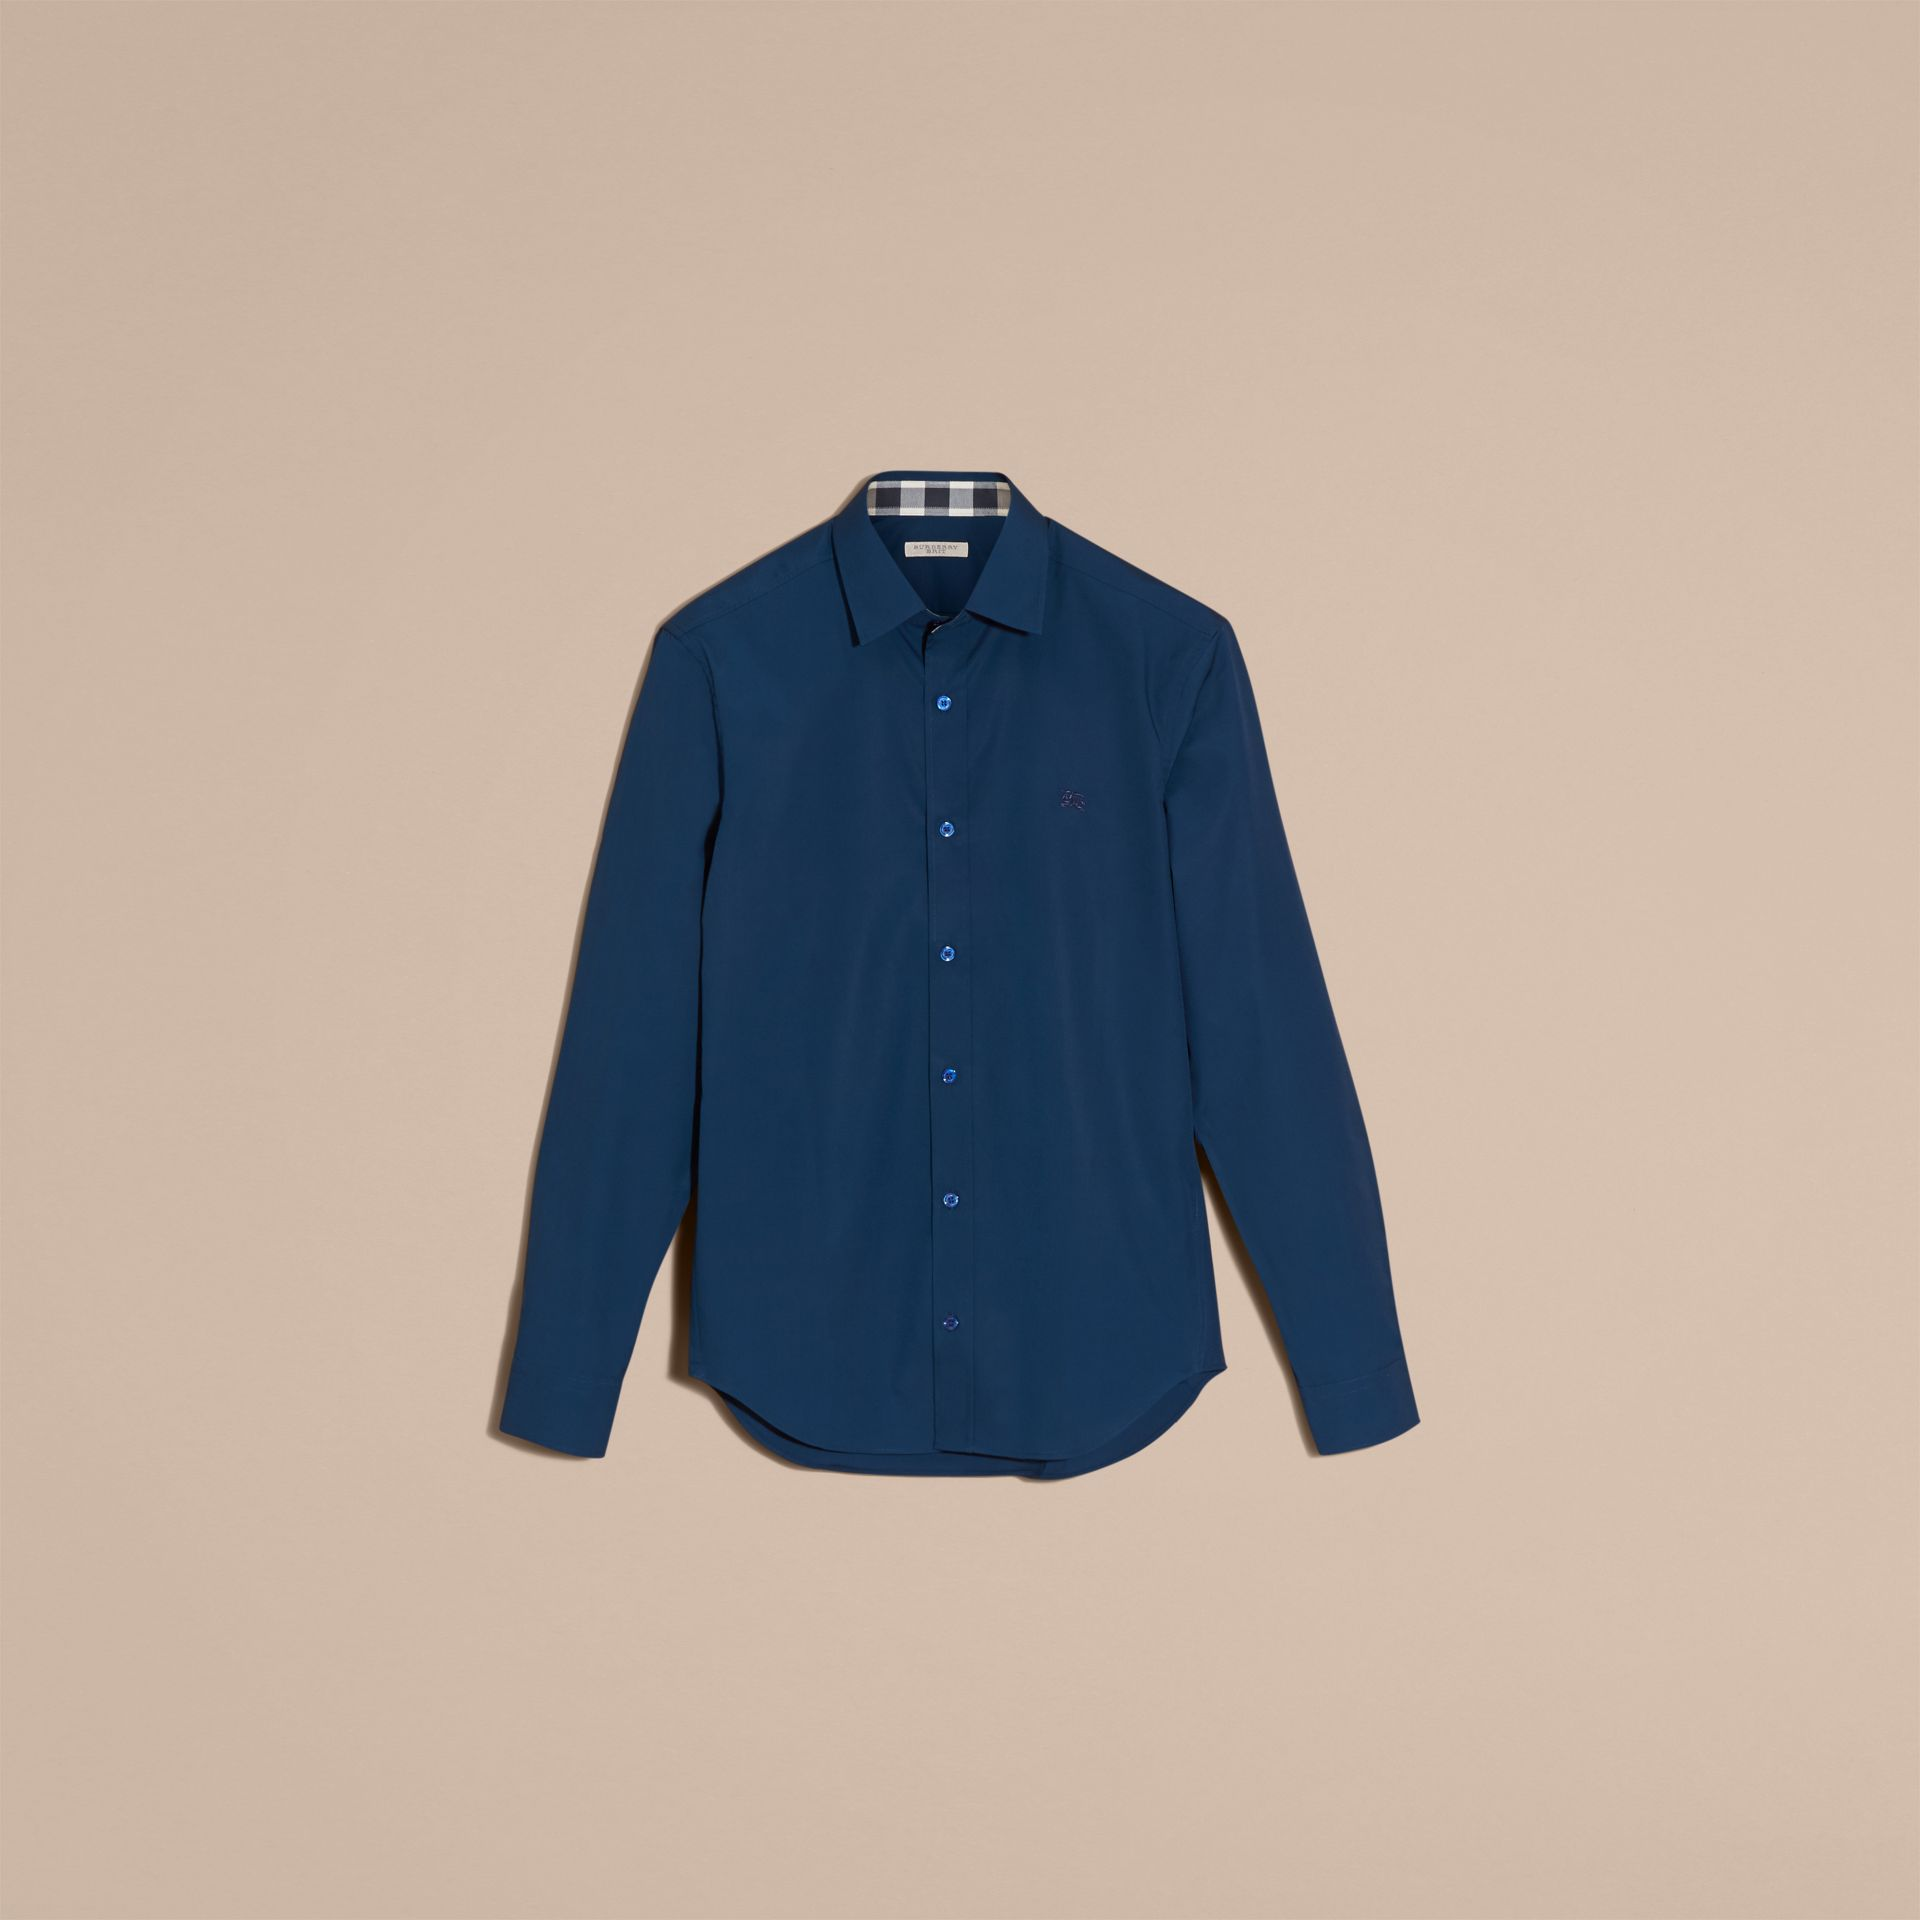 Deep teal blue Check Detail Stretch Cotton Poplin Shirt Deep Teal Blue - gallery image 4